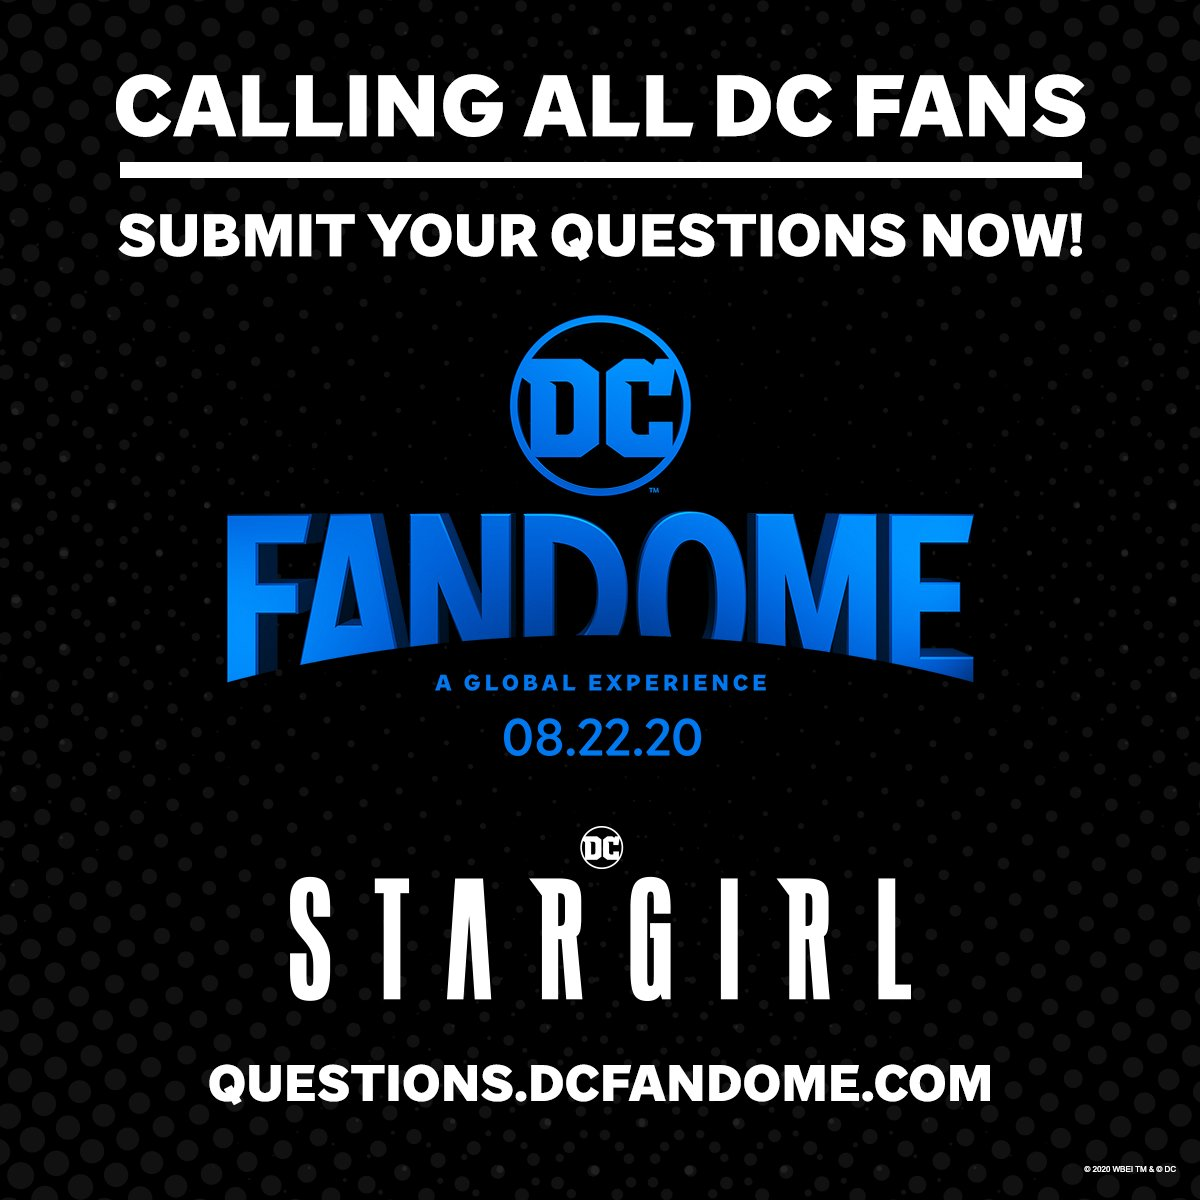 You've got questions! We've got answers. Submit your questions now about the DC Multiverse, and see if they're answered during #DCFanDome: https://t.co/6xpmtvLZSI https://t.co/LKnqlHjVkp